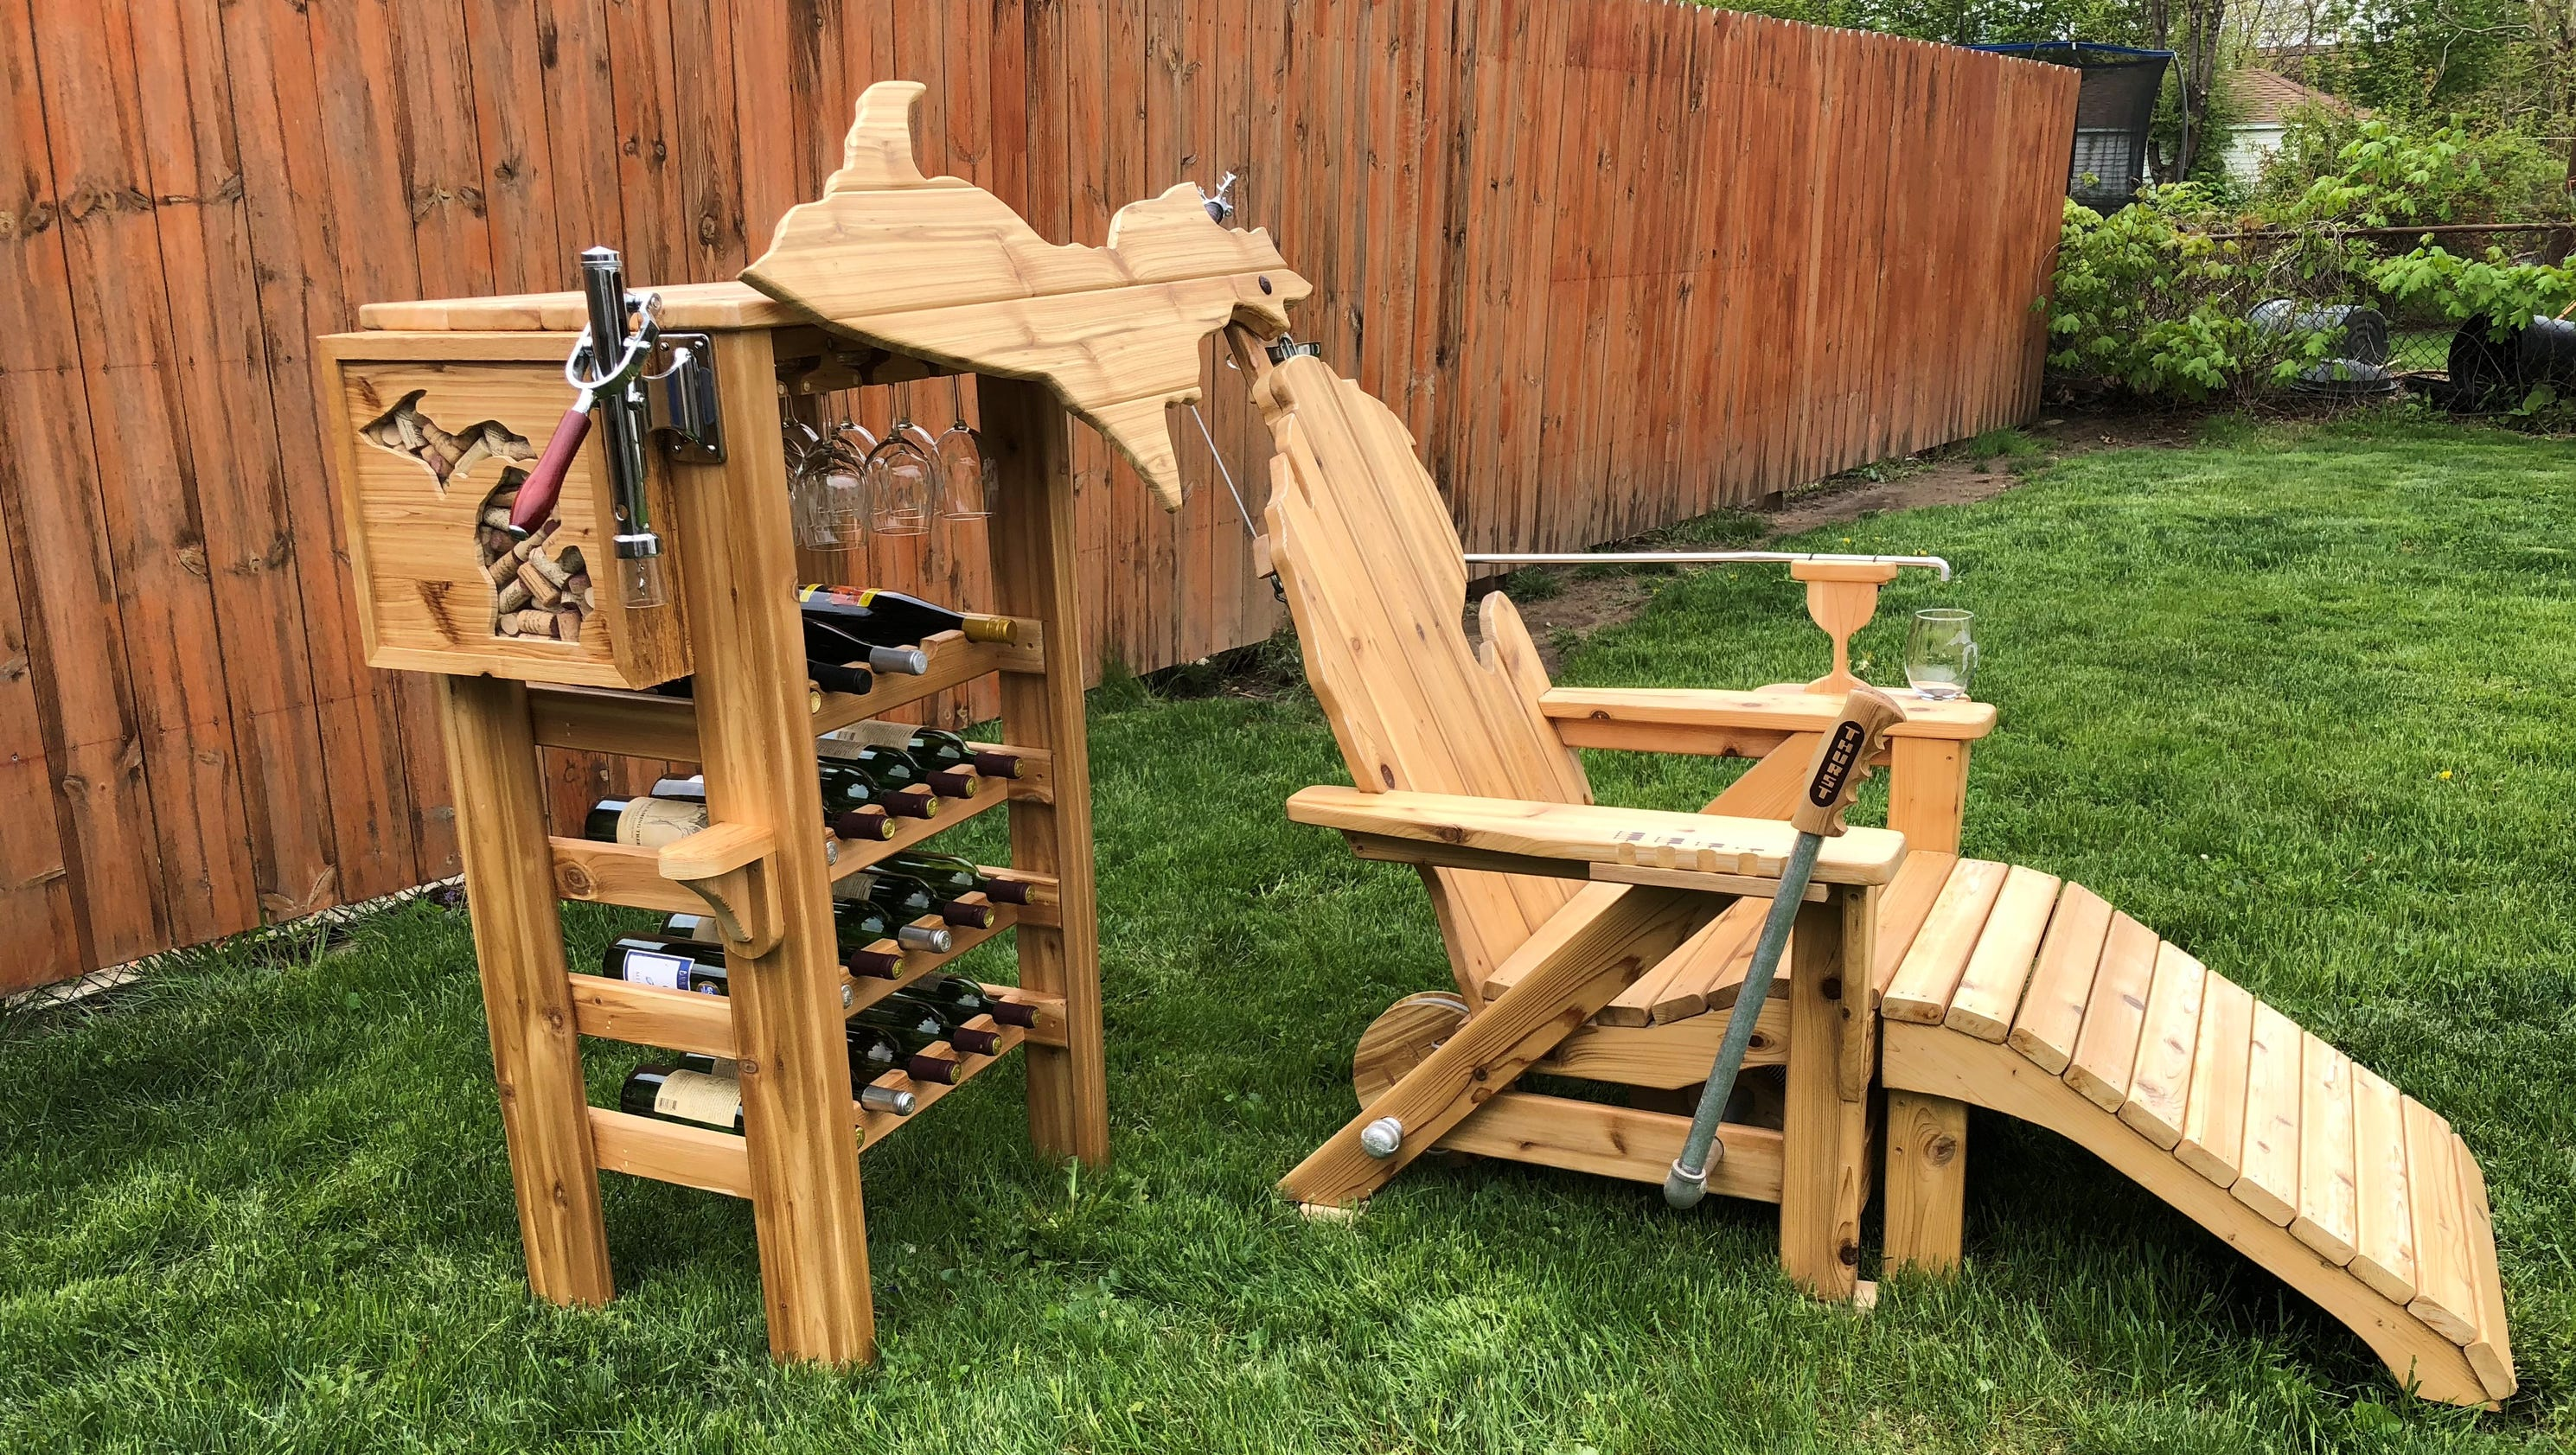 This Michigan Lawn Chair Will Pour You Wine